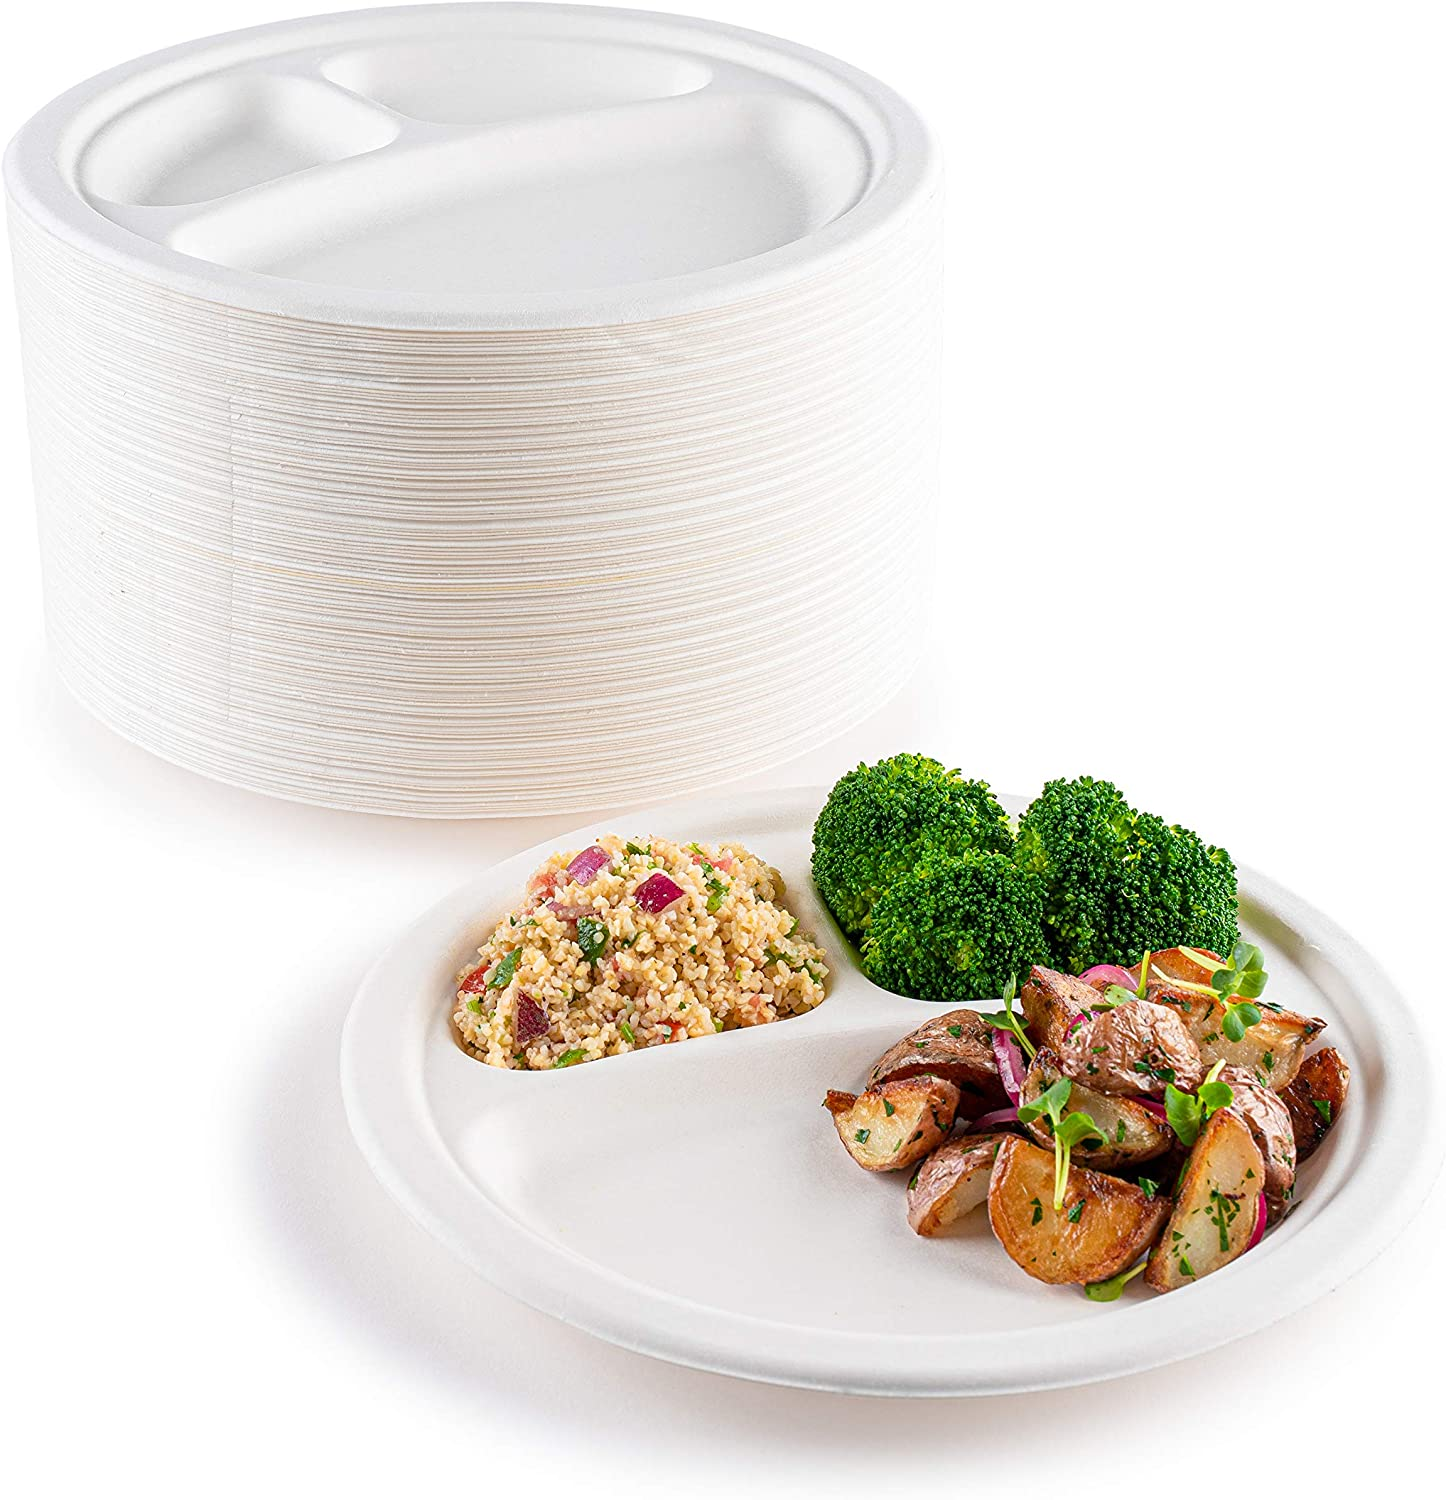 brheez Heavy Duty Round 3 Compartment Disposable Plates [10